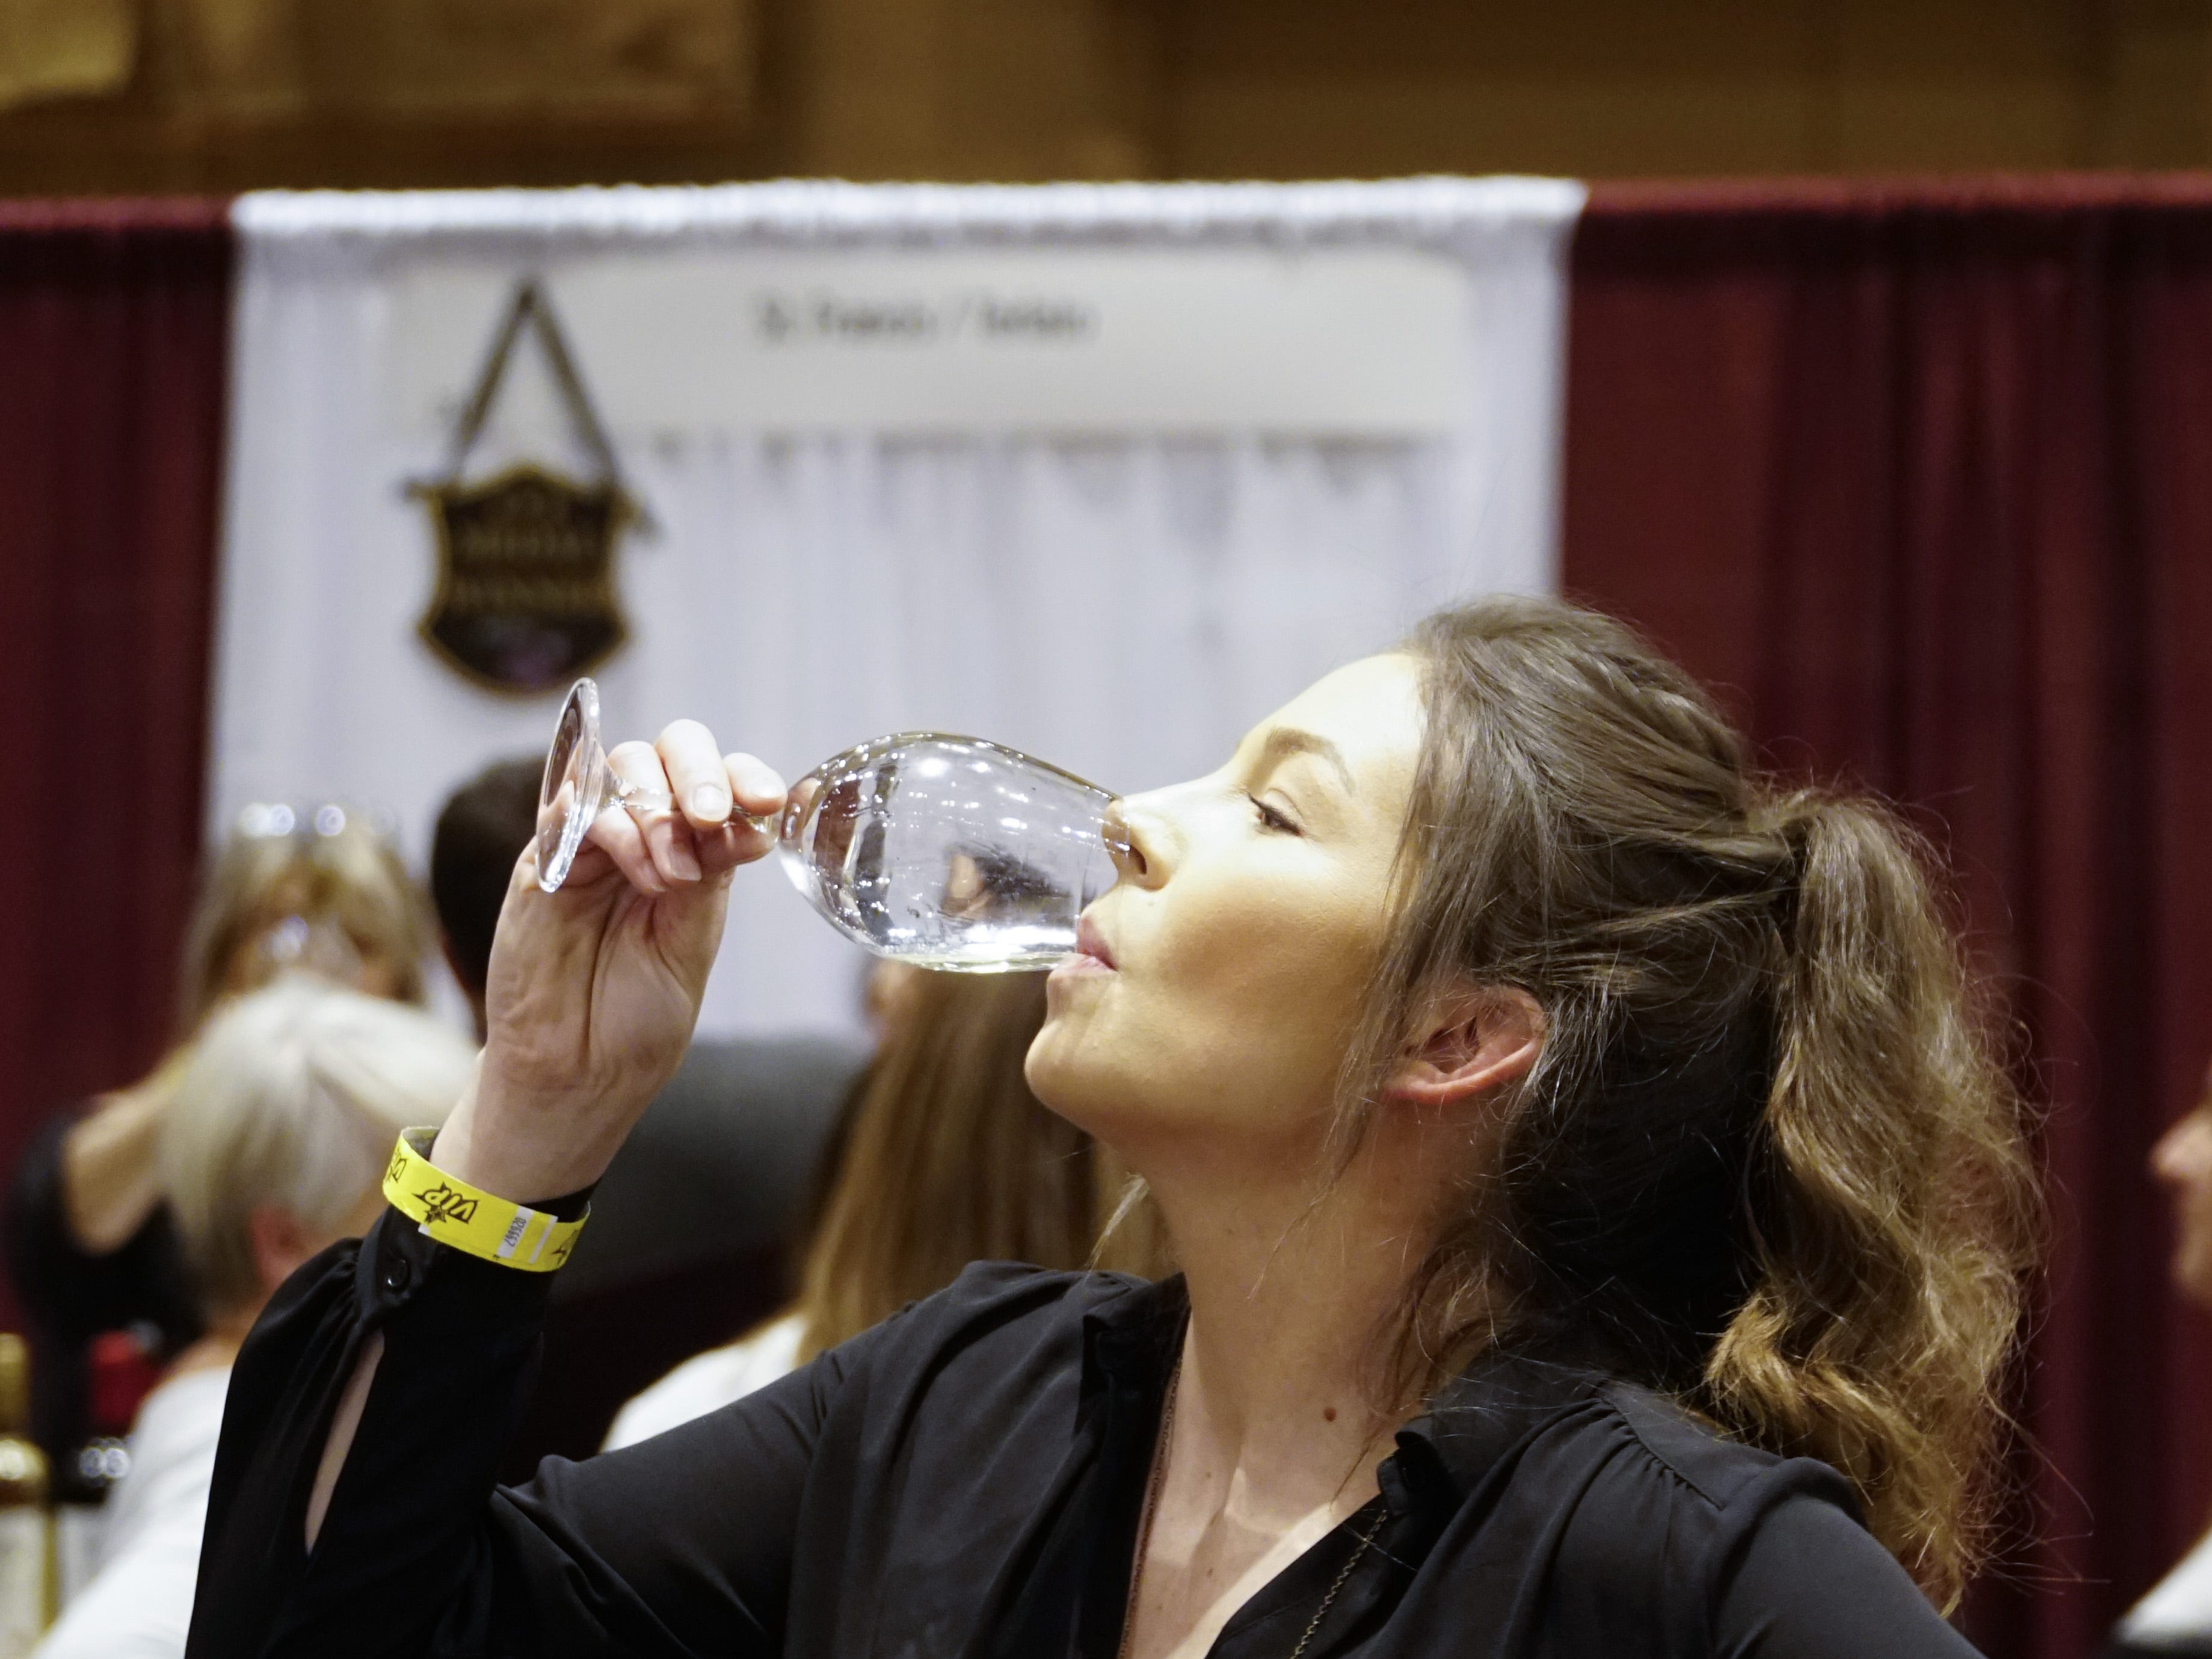 Kasey Bird finishes a glass of McManis chardonnay at The Cincinnati International Wine Festival, March 9, 2019.